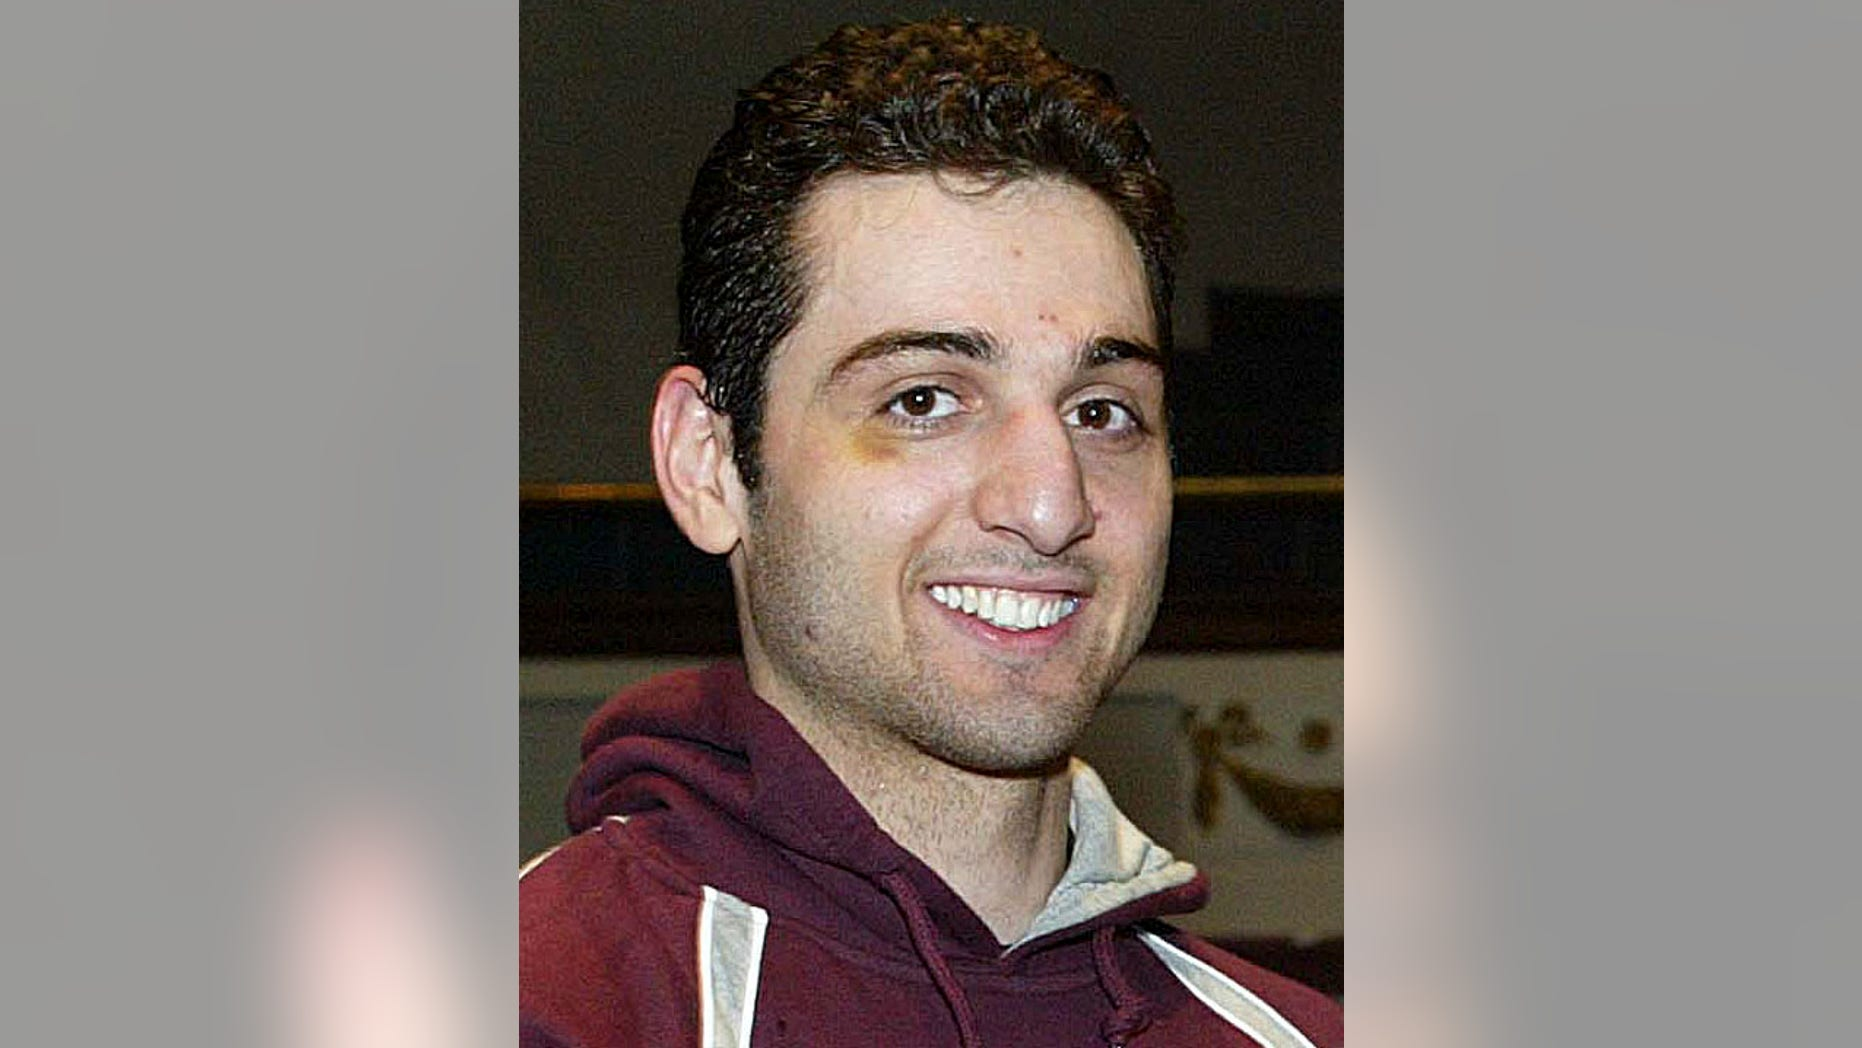 In this Feb. 17, 2010, photo, Tamerlan Tsarnaev, smiles after accepting the trophy for winning the 2010 New England Golden Gloves Championship from Dr. Joseph Downes, right, in Lowell, Mass.